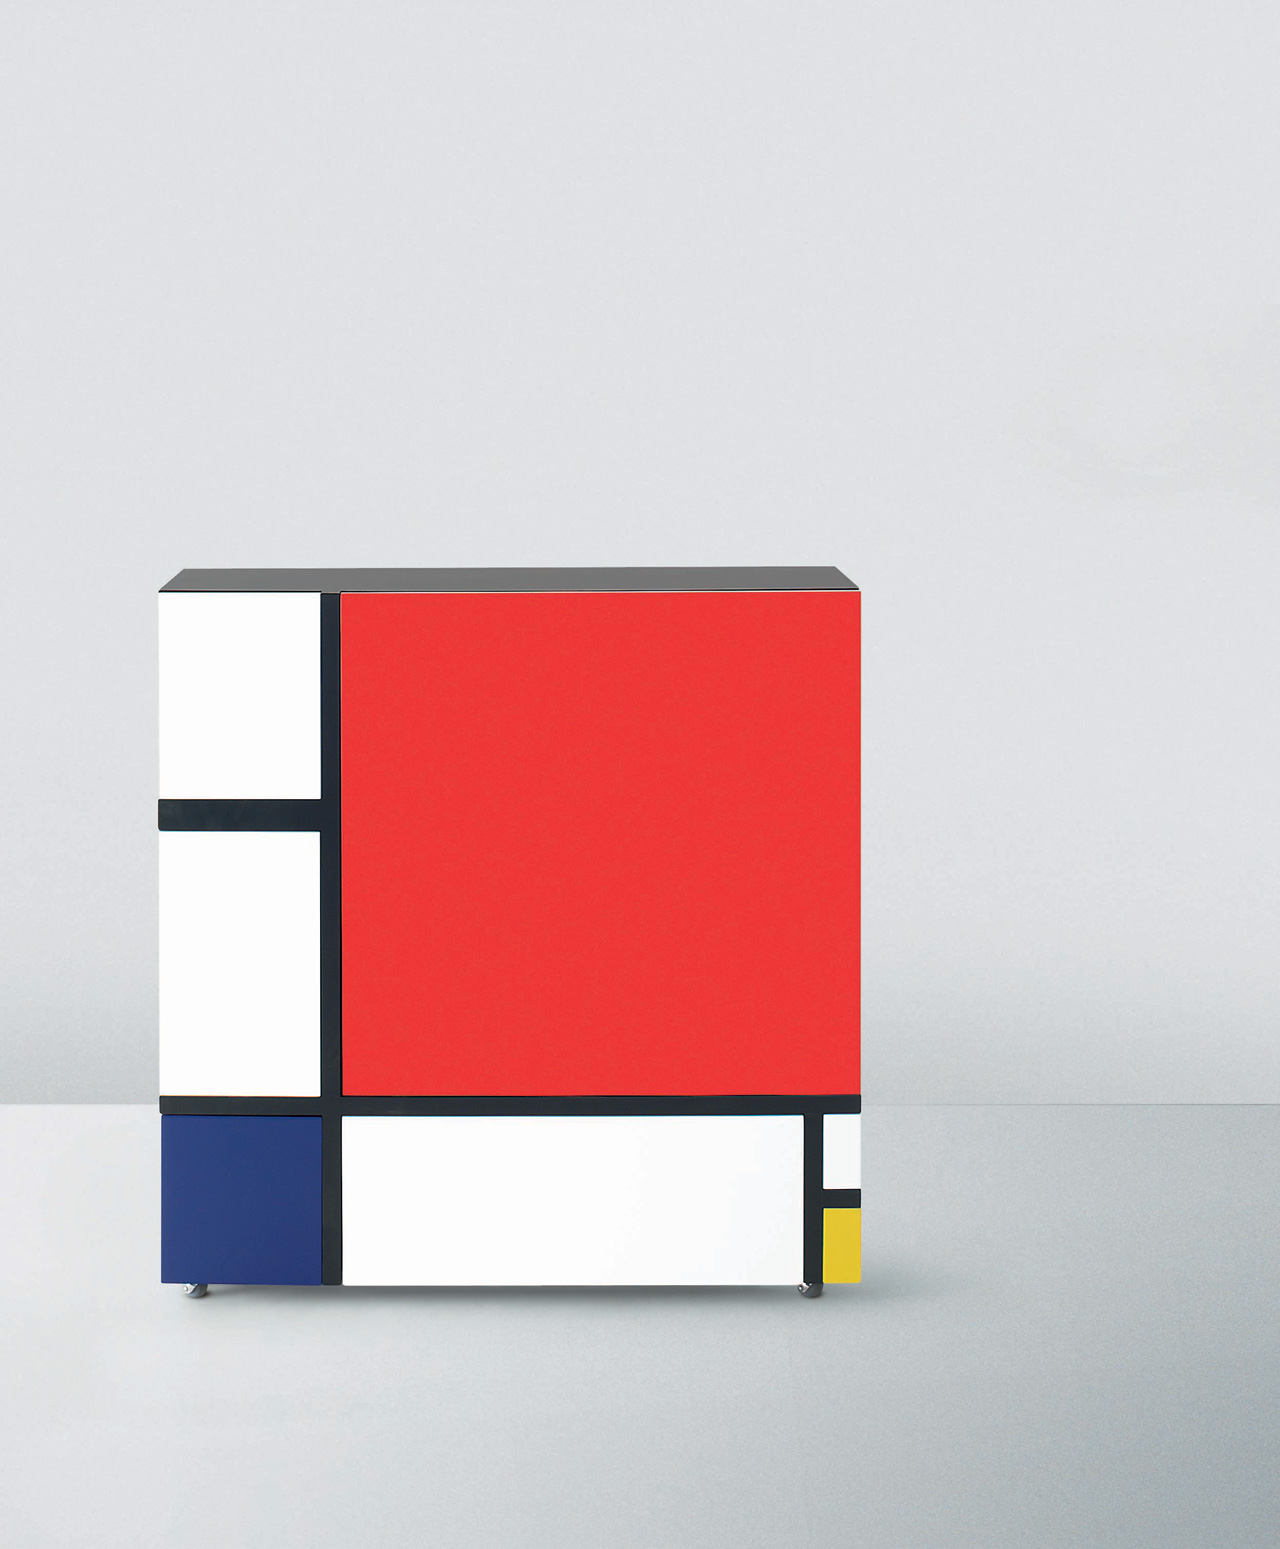 Cabinet with doors and drawers inspired by the most graphic masterpieces of Piet Mondrian, designed by Shiro Kuramata for Cappellini in 1975 and produced in 2009. Photo © Cappellini.